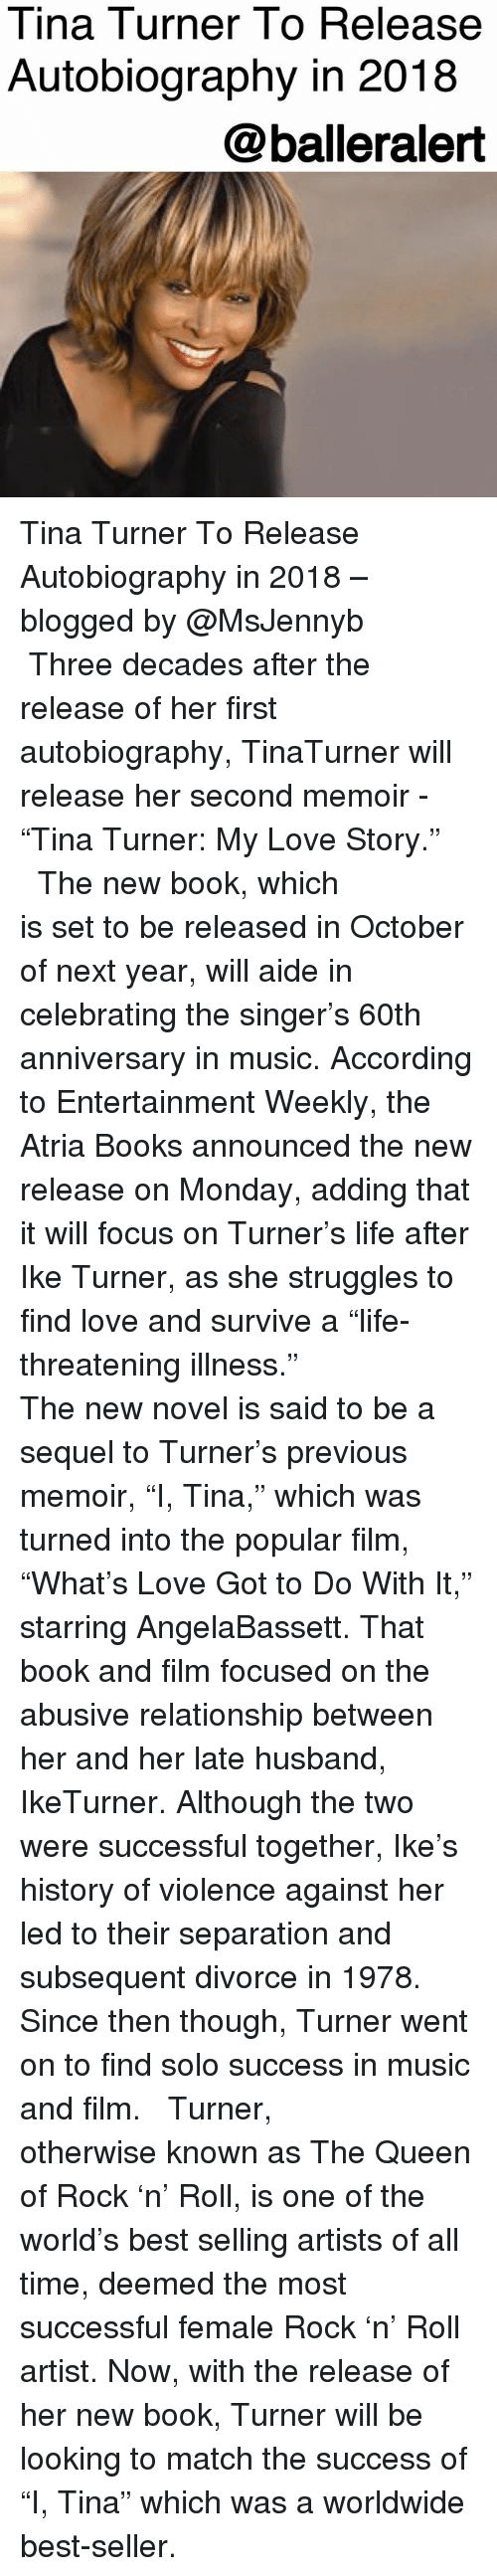 """Aide: Tina Turner To Release  Autobiography in 2018  @balleralert Tina Turner To Release Autobiography in 2018 – blogged by @MsJennyb ⠀⠀⠀⠀⠀⠀⠀ ⠀⠀⠀⠀⠀⠀⠀ Three decades after the release of her first autobiography, TinaTurner will release her second memoir - """"Tina Turner: My Love Story."""" ⠀⠀⠀⠀⠀⠀⠀ ⠀⠀⠀⠀⠀⠀⠀ The new book, which is set to be released in October of next year, will aide in celebrating the singer's 60th anniversary in music. According to Entertainment Weekly, the Atria Books announced the new release on Monday, adding that it will focus on Turner's life after Ike Turner, as she struggles to find love and survive a """"life-threatening illness."""" ⠀⠀⠀⠀⠀⠀⠀ ⠀⠀⠀⠀⠀⠀⠀ The new novel is said to be a sequel to Turner's previous memoir, """"I, Tina,"""" which was turned into the popular film, """"What's Love Got to Do With It,"""" starring AngelaBassett. That book and film focused on the abusive relationship between her and her late husband, IkeTurner. Although the two were successful together, Ike's history of violence against her led to their separation and subsequent divorce in 1978. Since then though, Turner went on to find solo success in music and film. ⠀⠀⠀⠀⠀⠀⠀ ⠀⠀⠀⠀⠀⠀⠀ Turner, otherwise known as The Queen of Rock 'n' Roll, is one of the world's best selling artists of all time, deemed the most successful female Rock 'n' Roll artist. Now, with the release of her new book, Turner will be looking to match the success of """"I, Tina"""" which was a worldwide best-seller."""